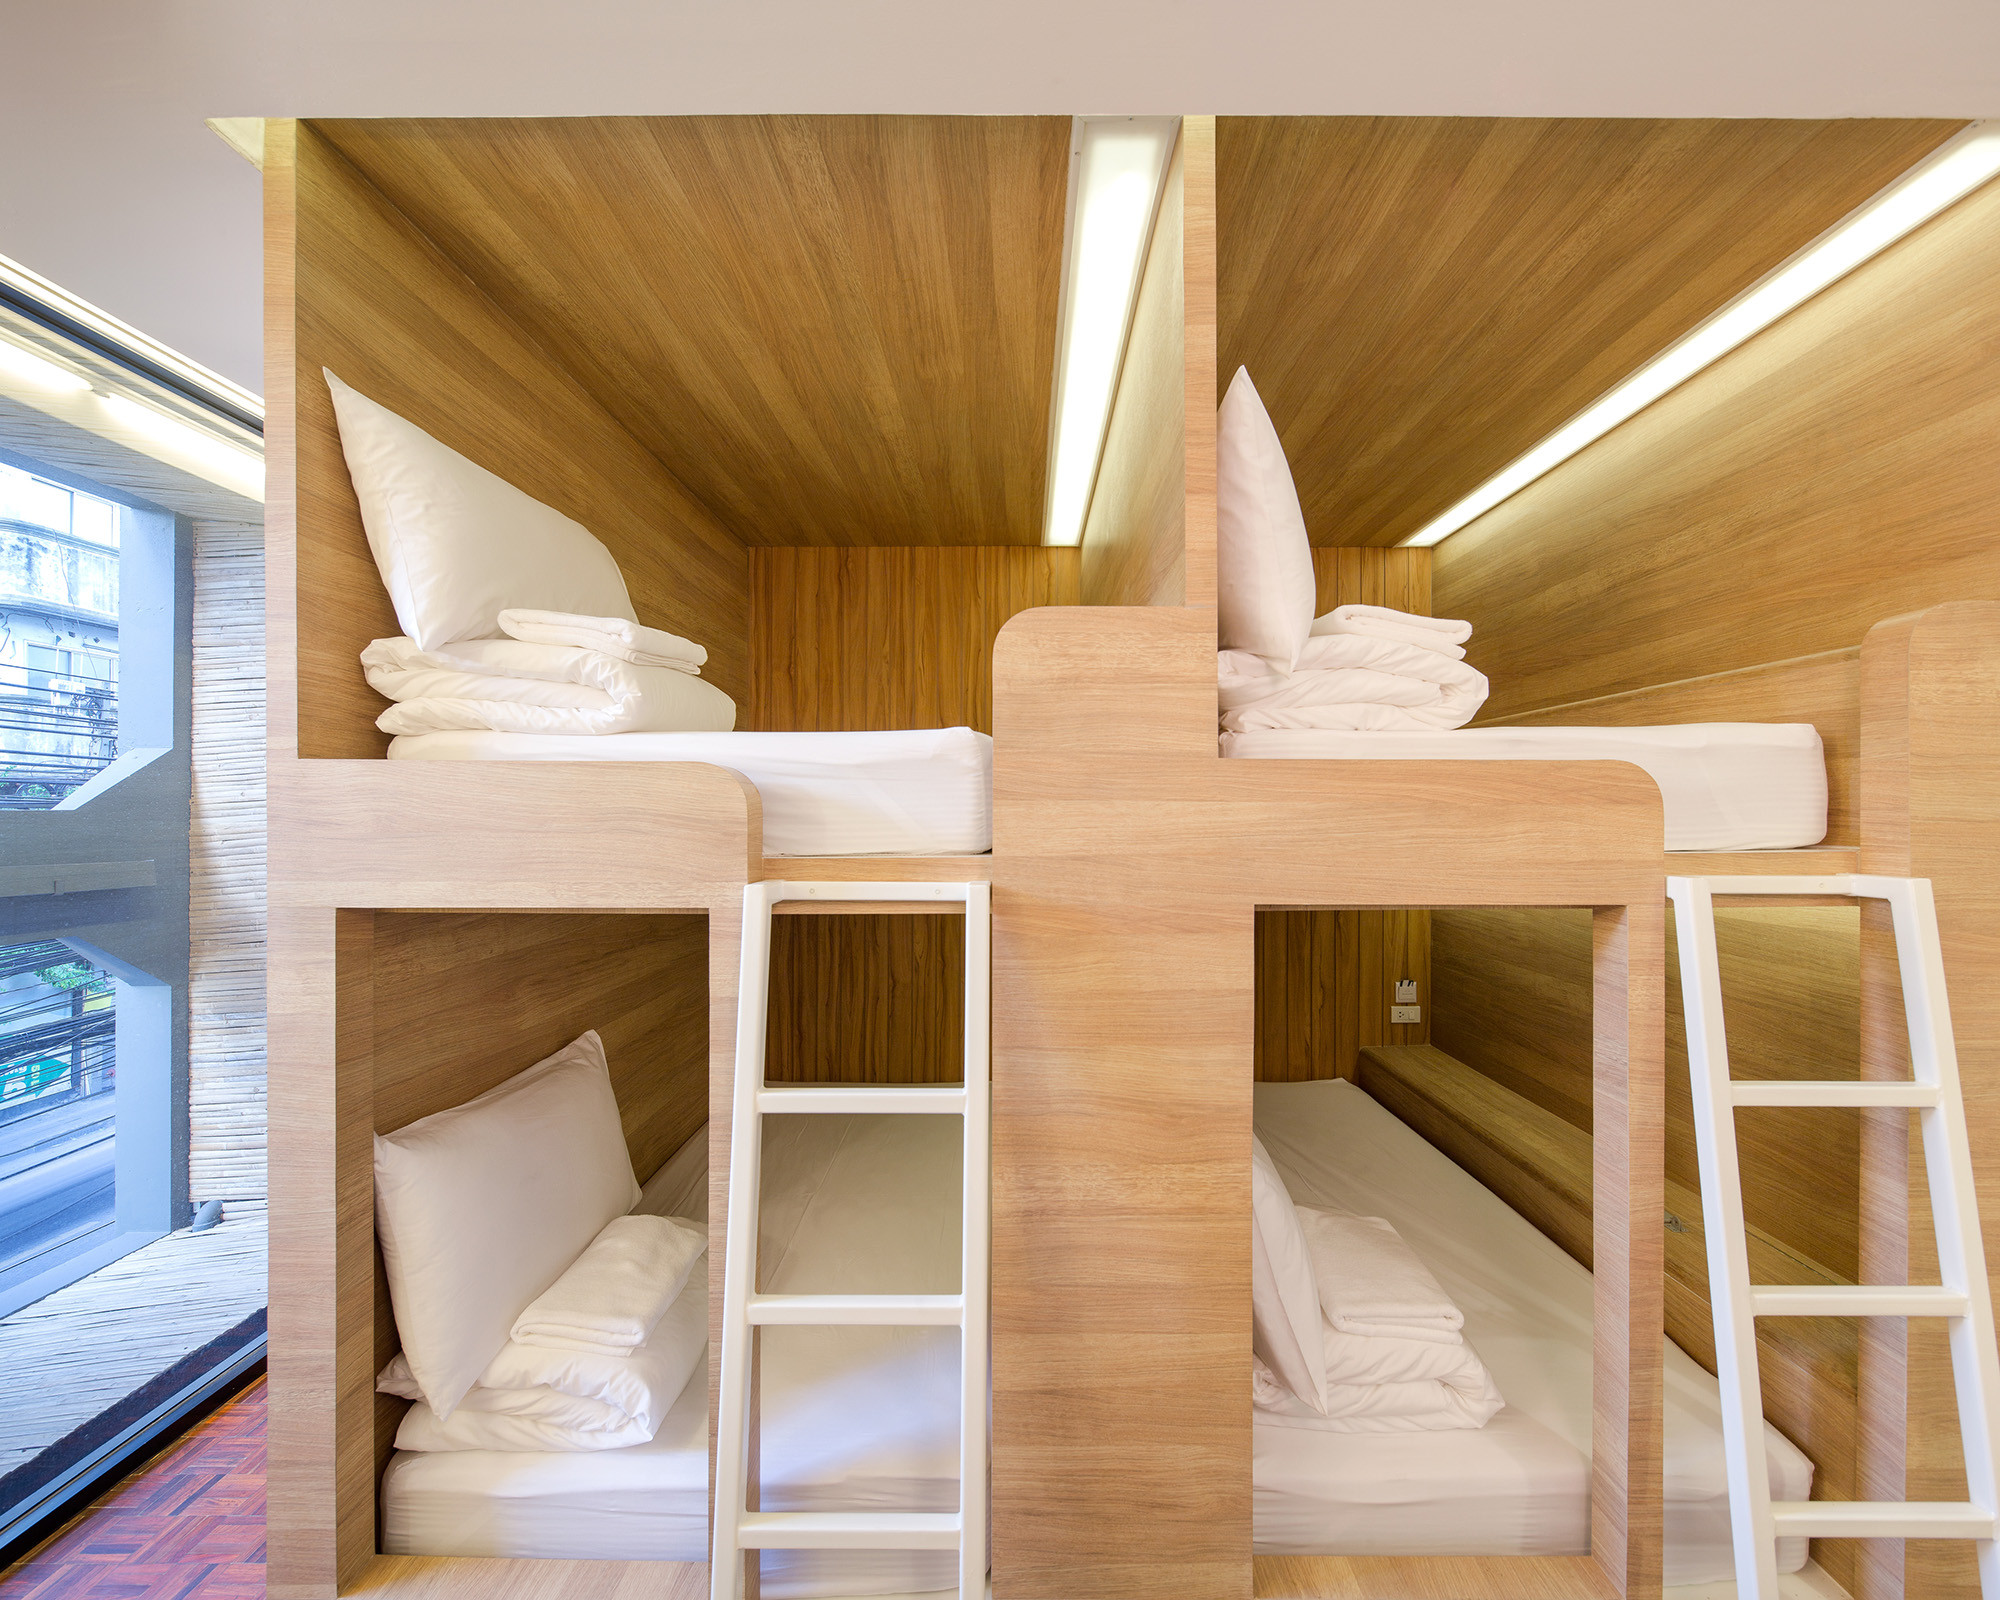 Gallery Of Yim Huai Khwang Hostel Supermachine Studio 7 - Ubon-house-in-thailand-by-supermachine-studio